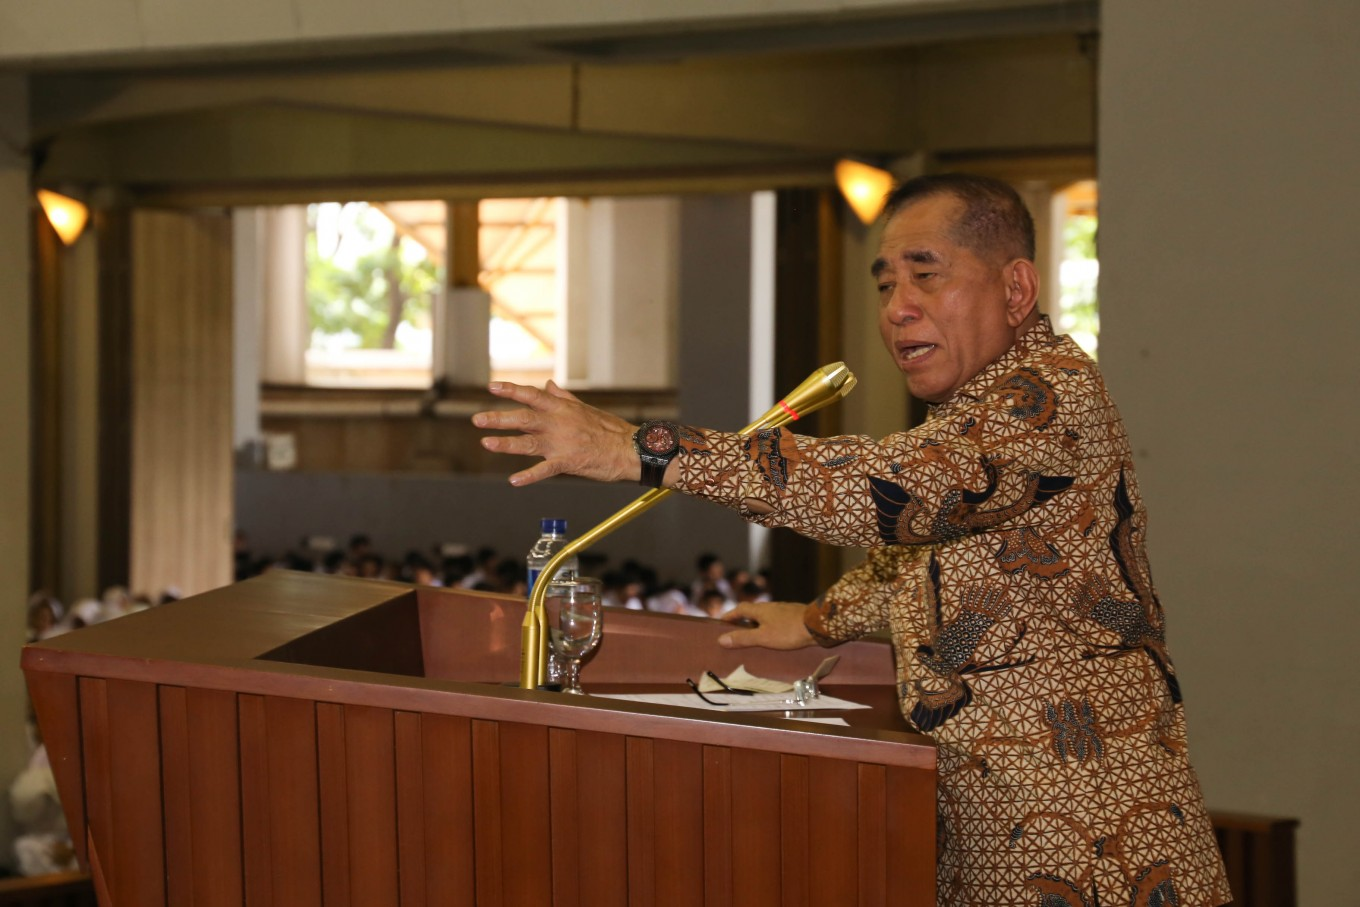 Minister warns new UI students about 'liberalism, communism, radicalism'